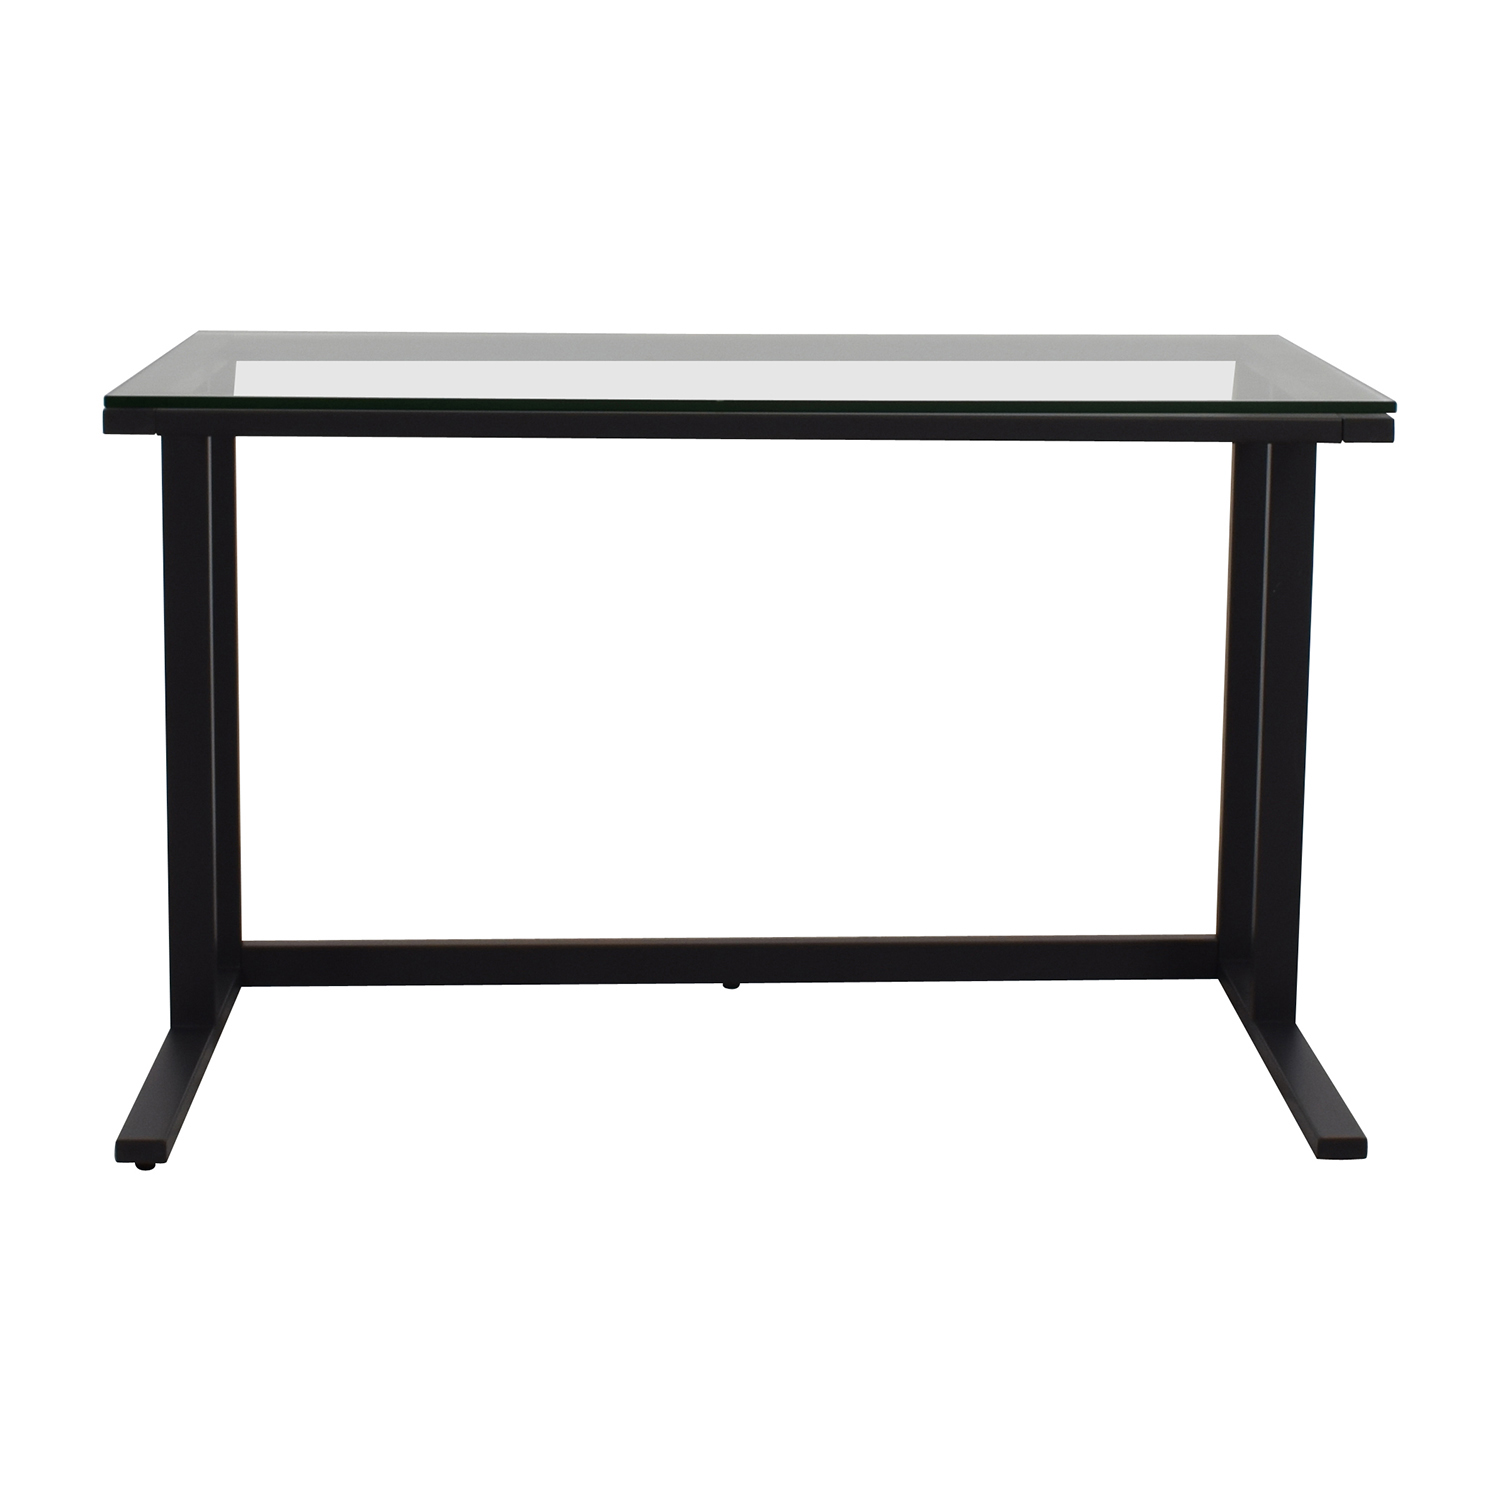 shop Crate & Barrel Pilsen Desk Graphite Grey Crate & Barrel Sofas